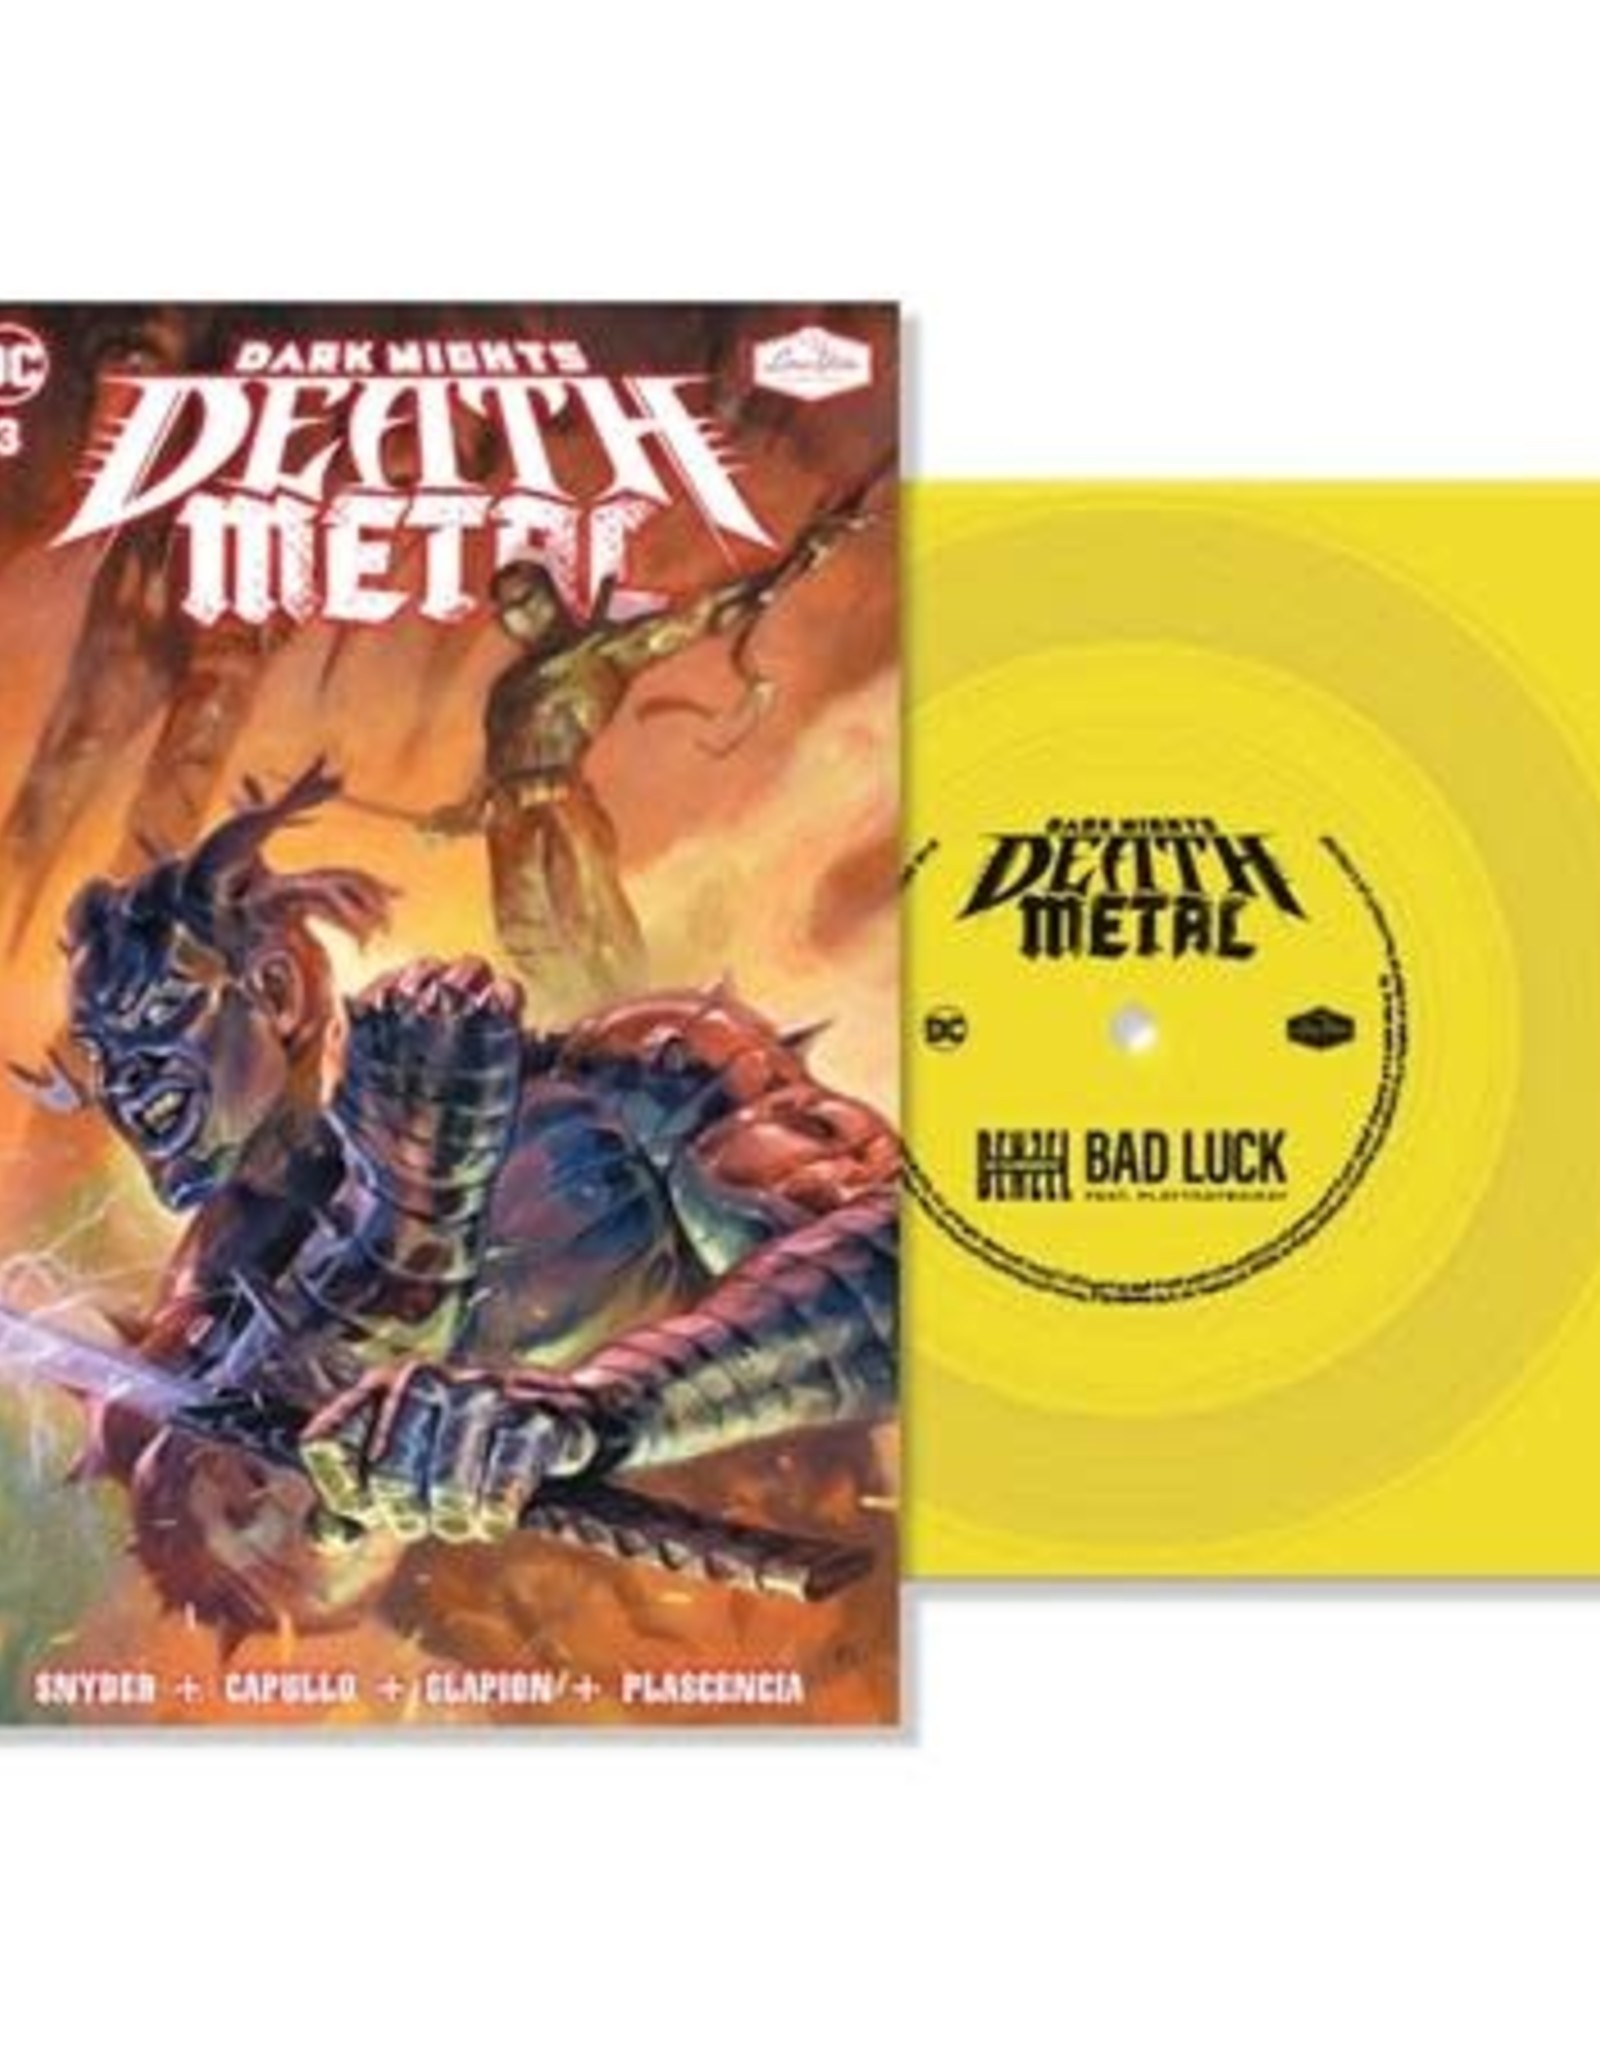 DC Comics Dark Nights Death Metal #3 Soundtrack Spec ED Denzel Curry With Flexi Single Featuring Bad Luck